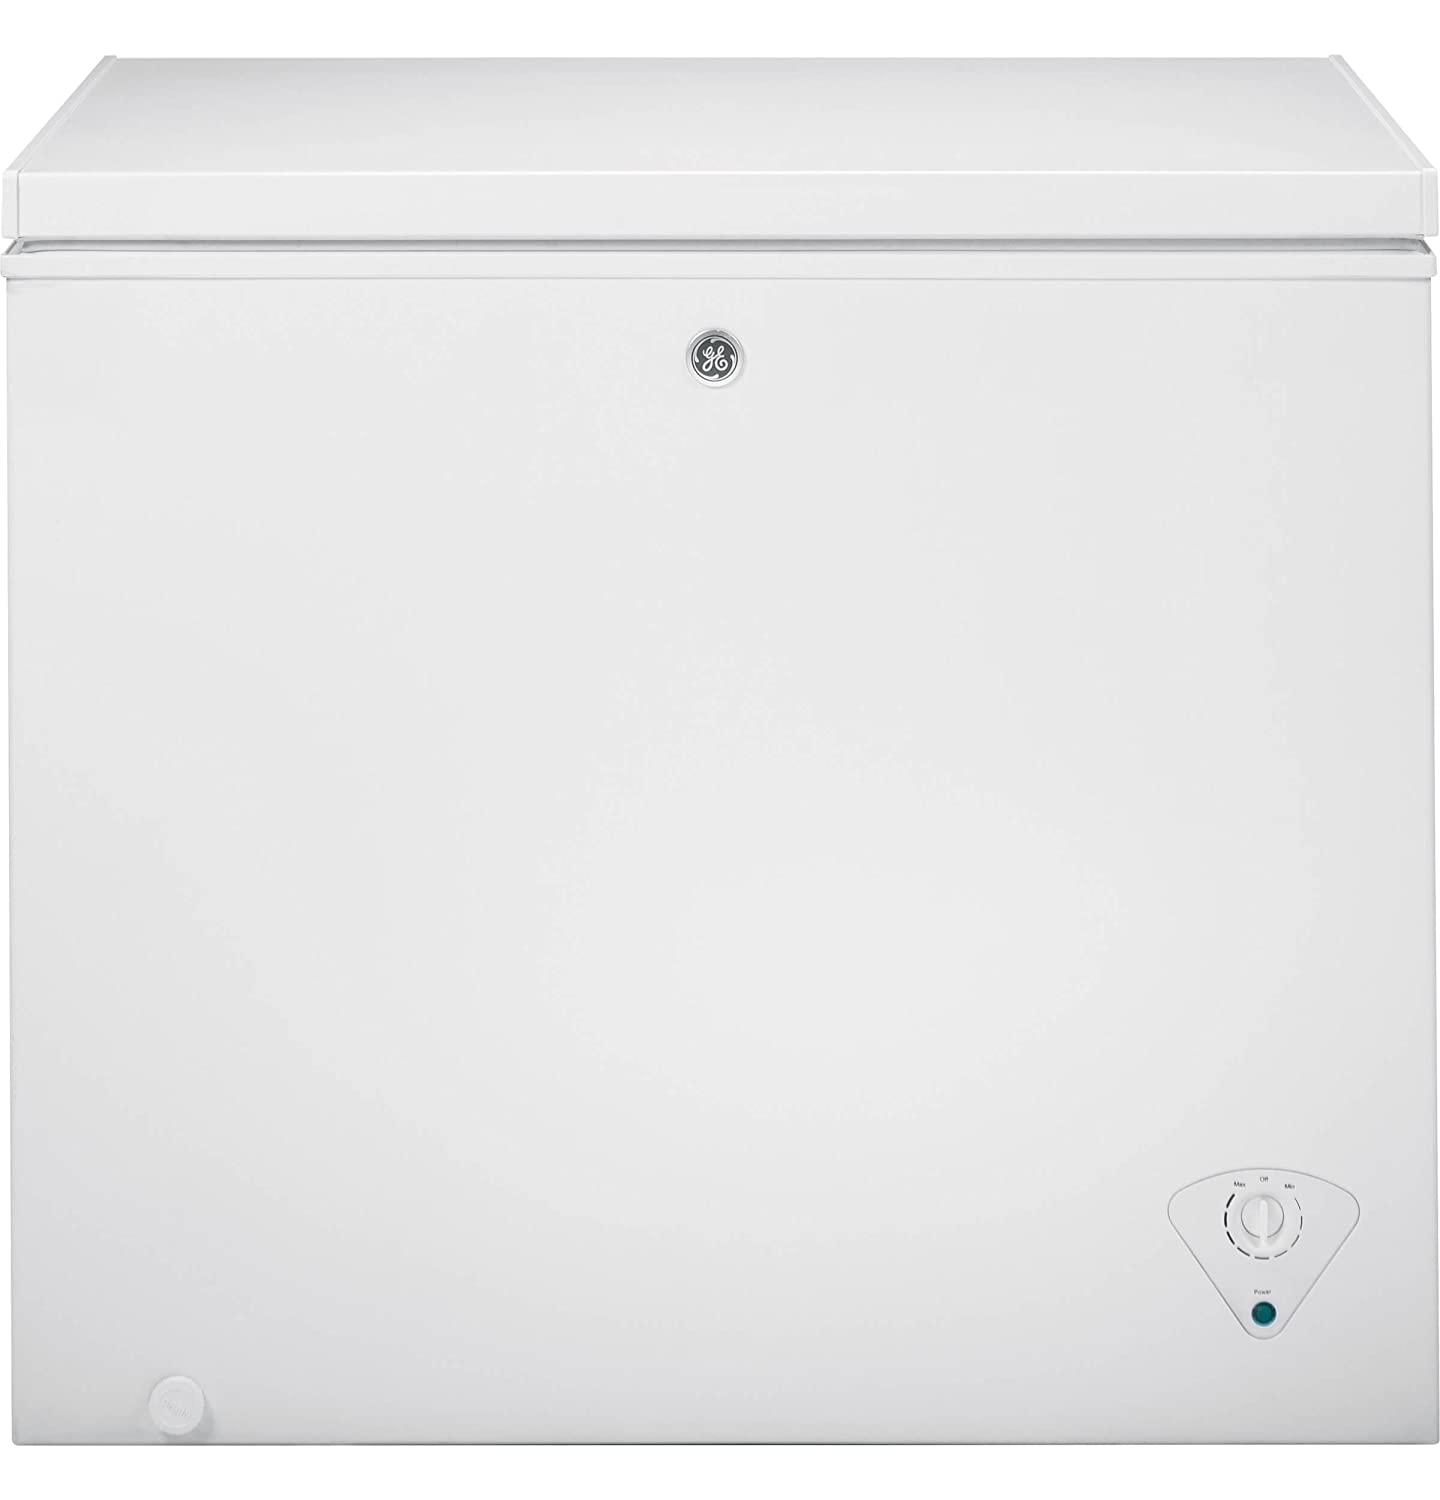 3. GE FCM7SKWW 7 Cu. Ft. White Chest Freezer